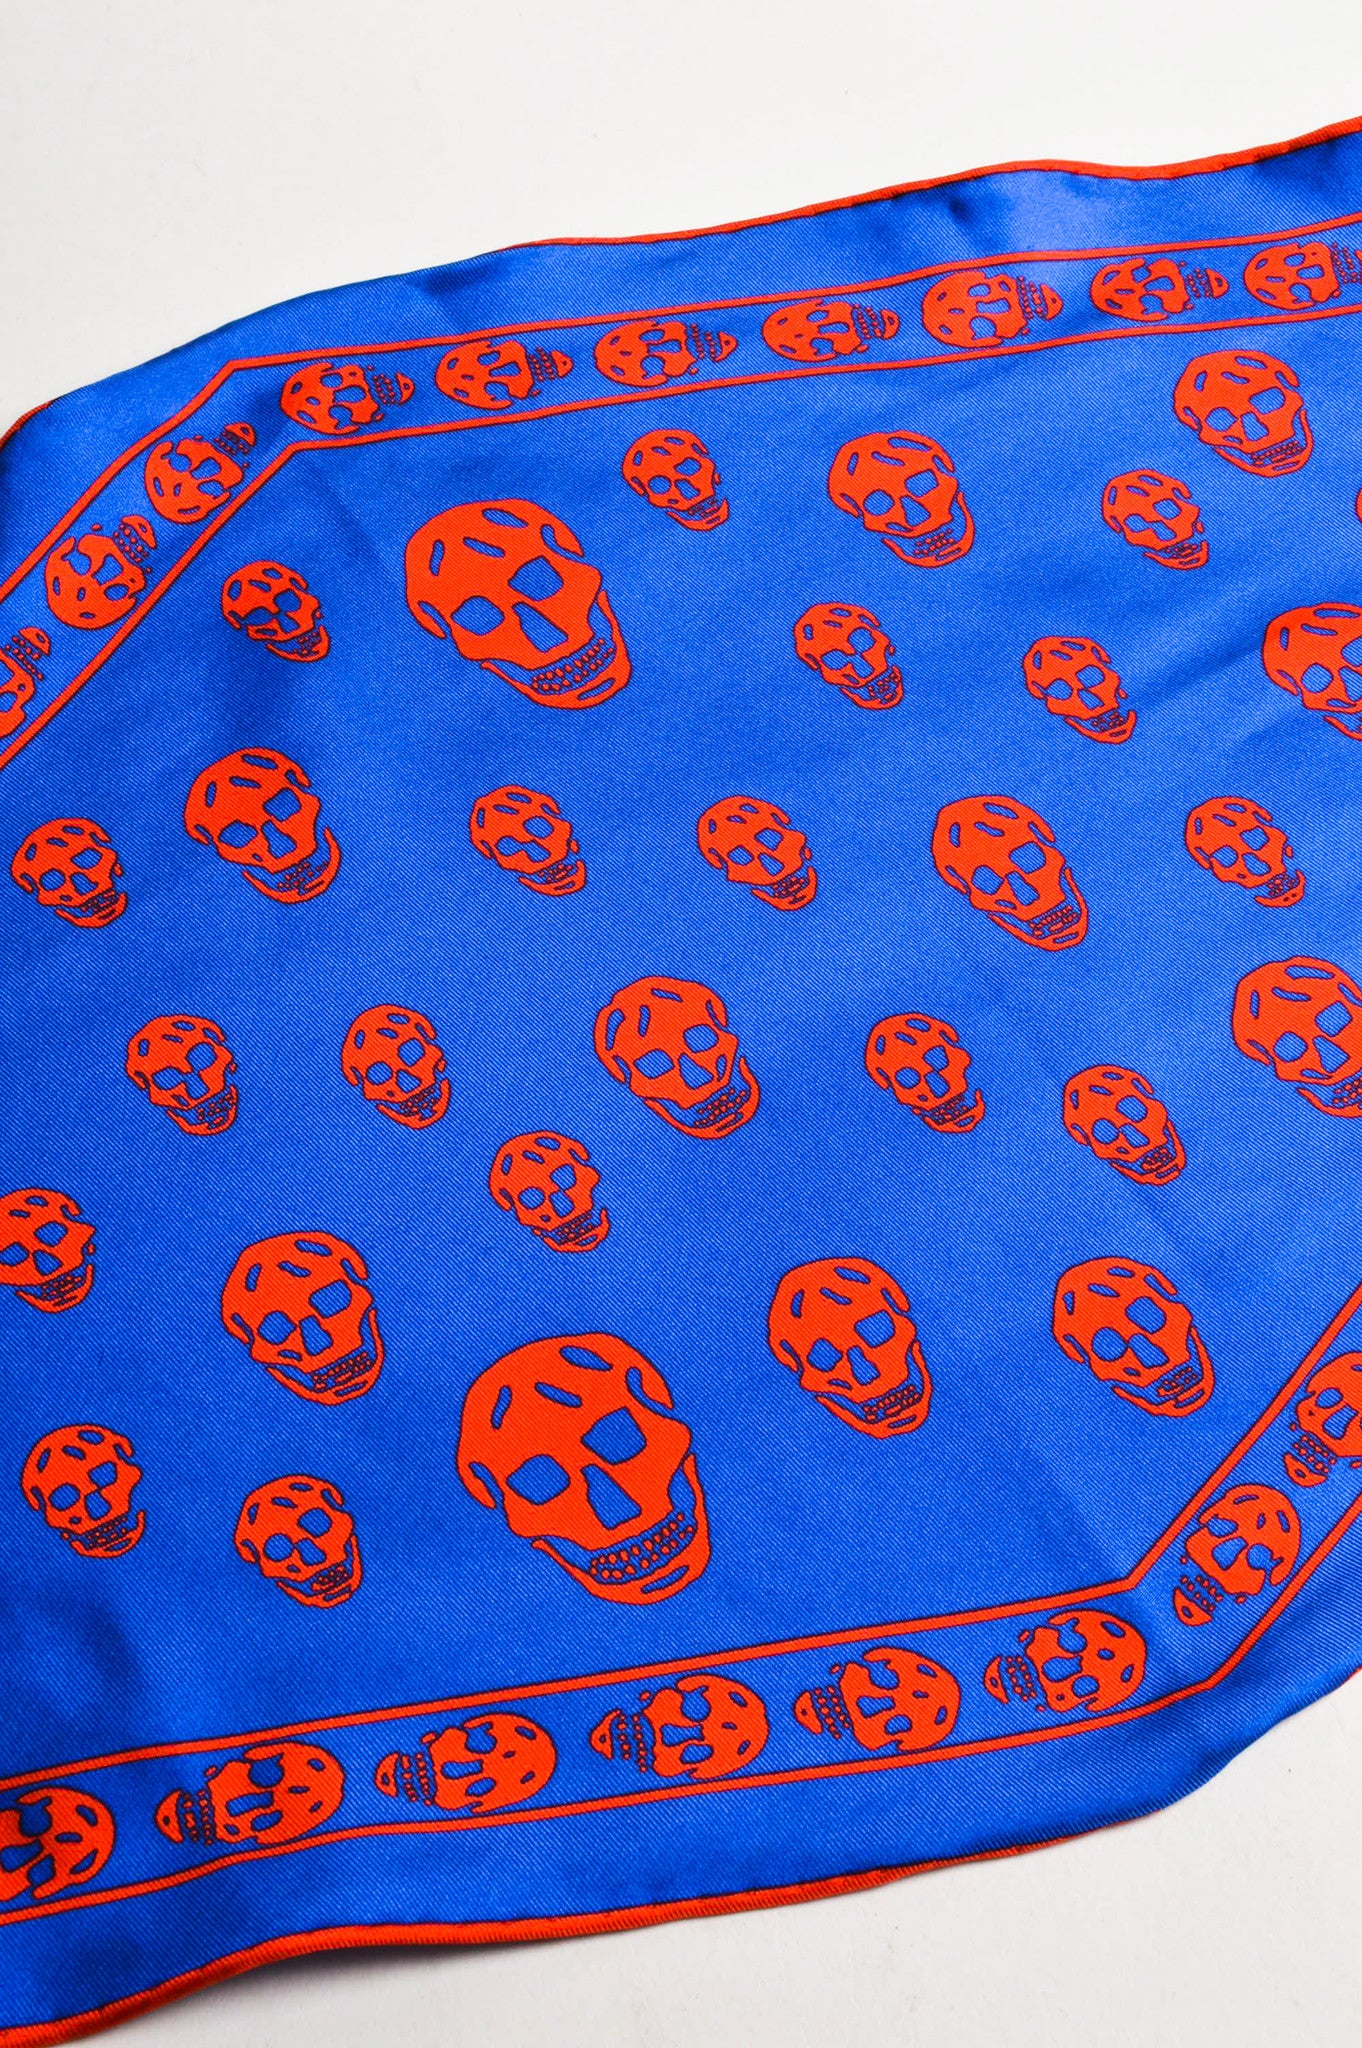 Alexander McQueen Blue and Red Silk Skull Print Diamond Scarf Detail